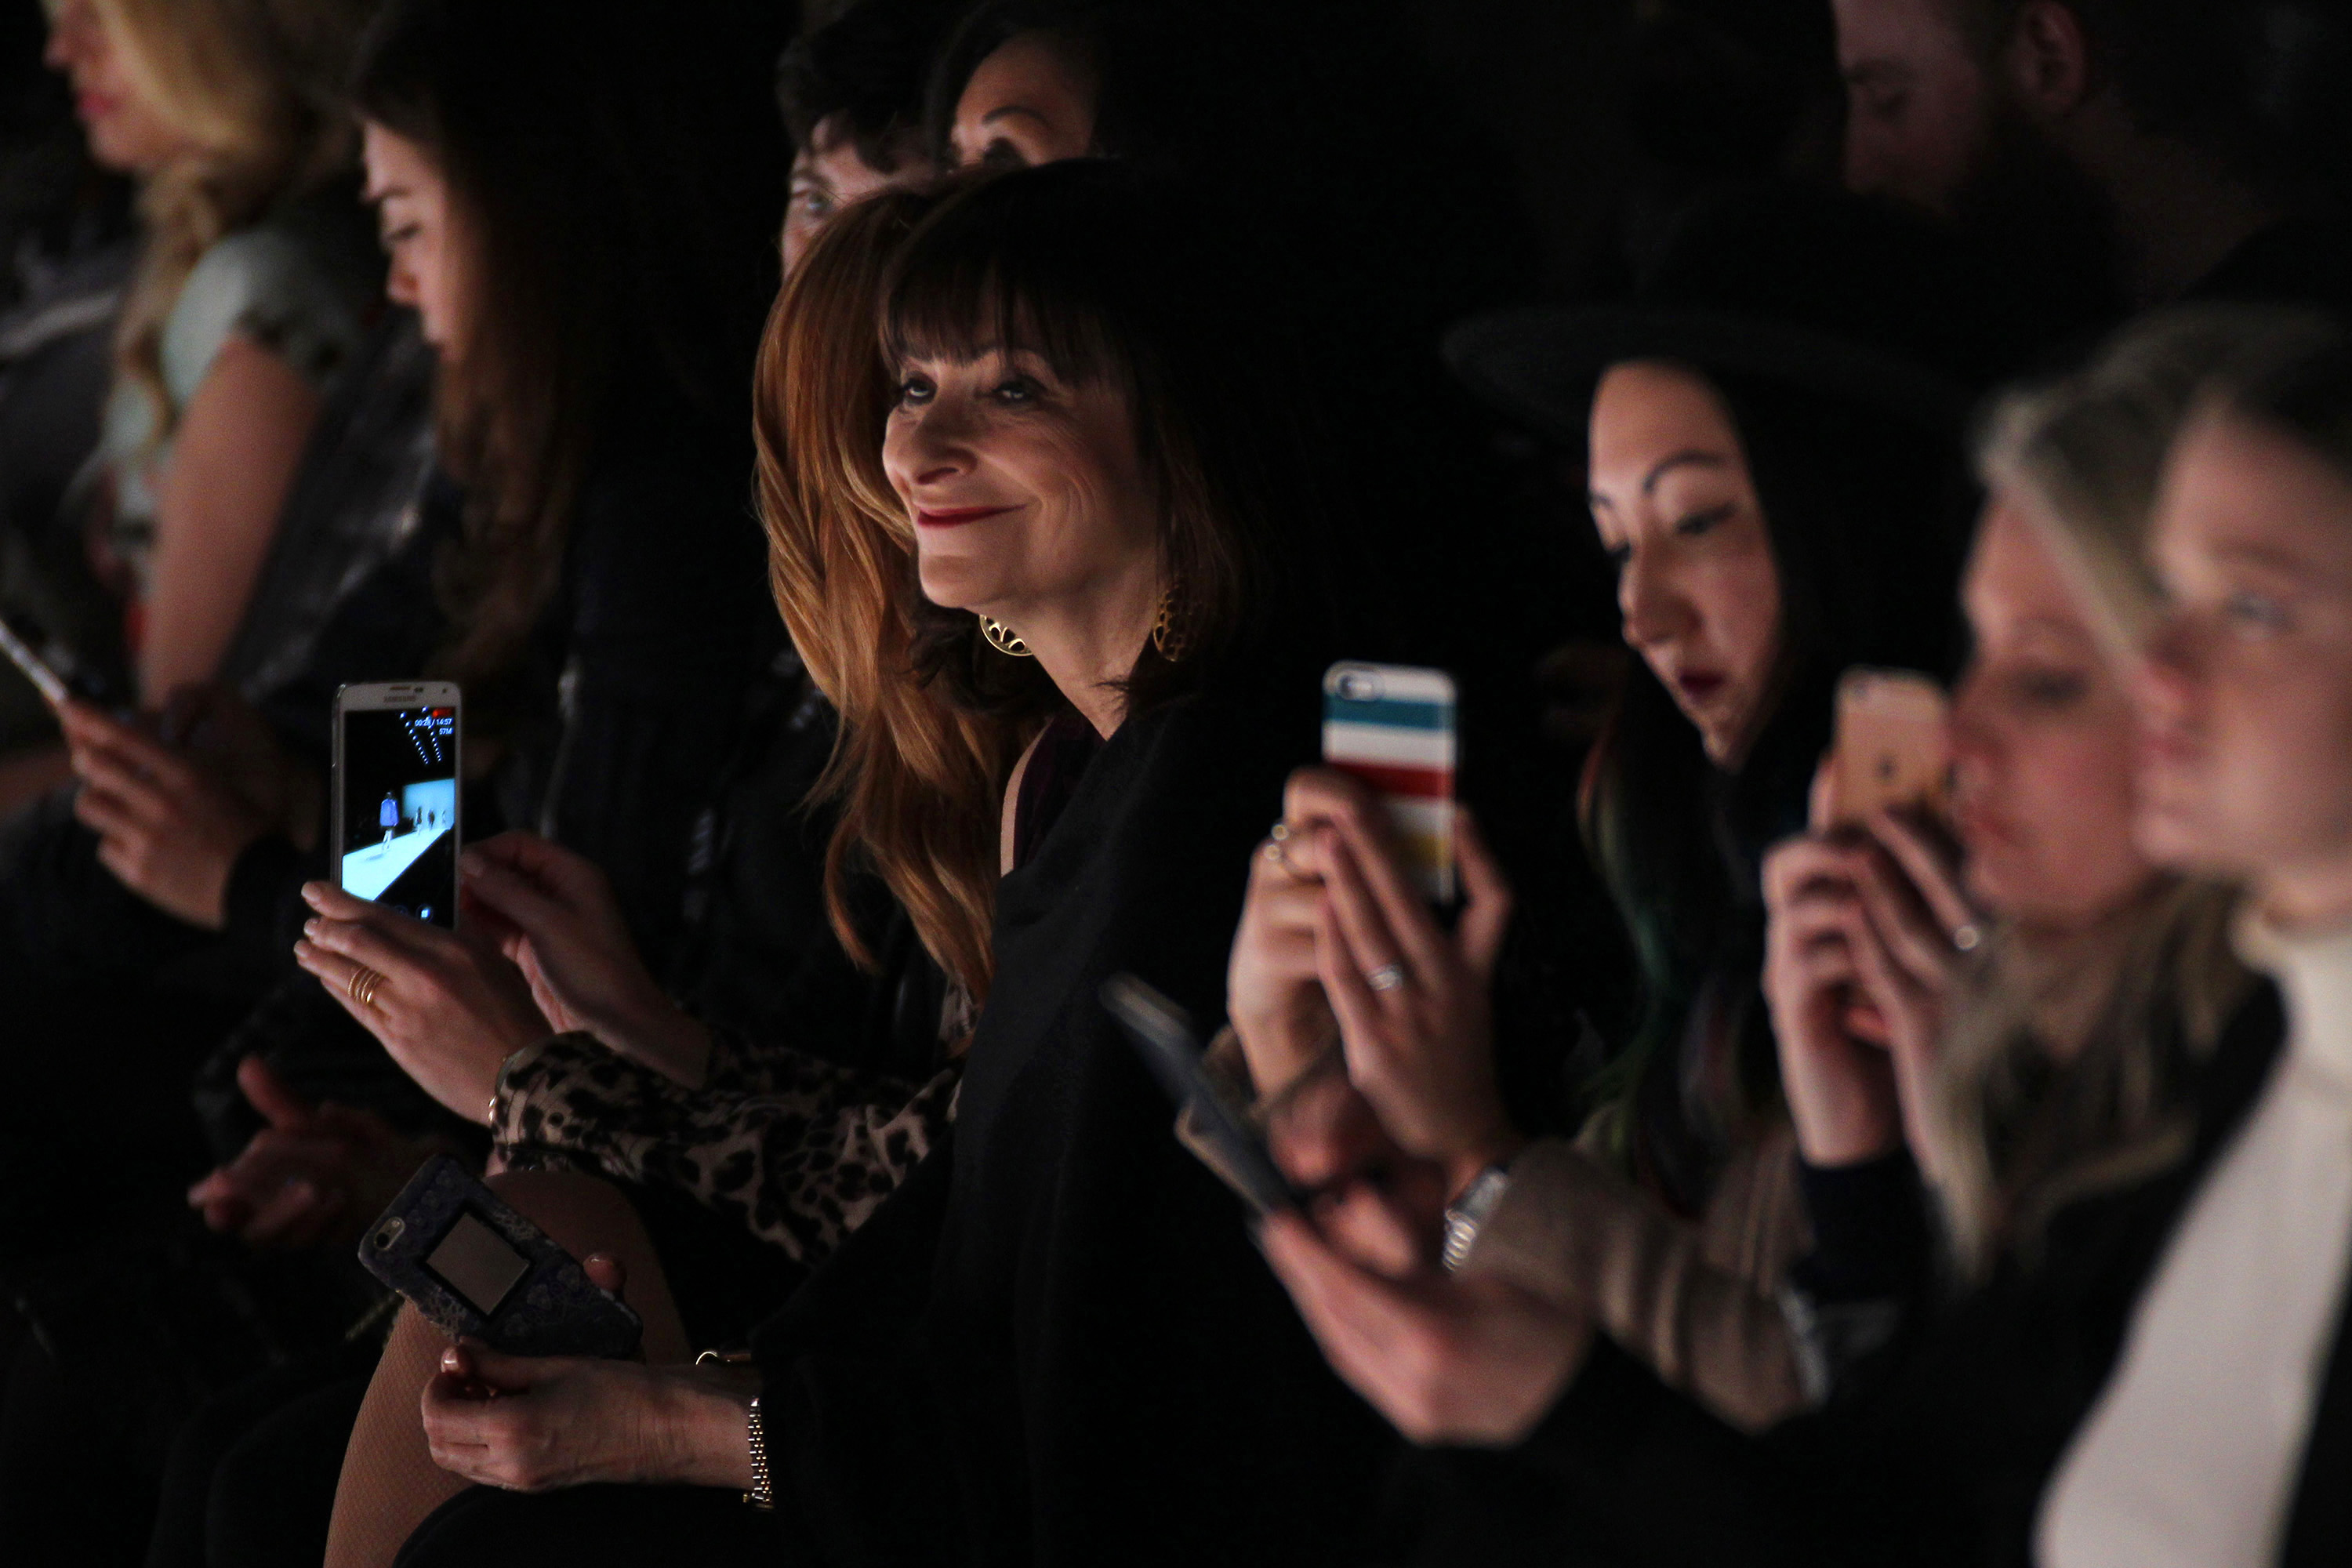 TORONTO, ON - MARCH 16:  Jeanne Beker takes a picture for social media during the Jennifer Torosian fashion show at David Pecaut Square on March 16, 2016 in Toronto, Canada.  (Photo by Edward James/FilmMagic)